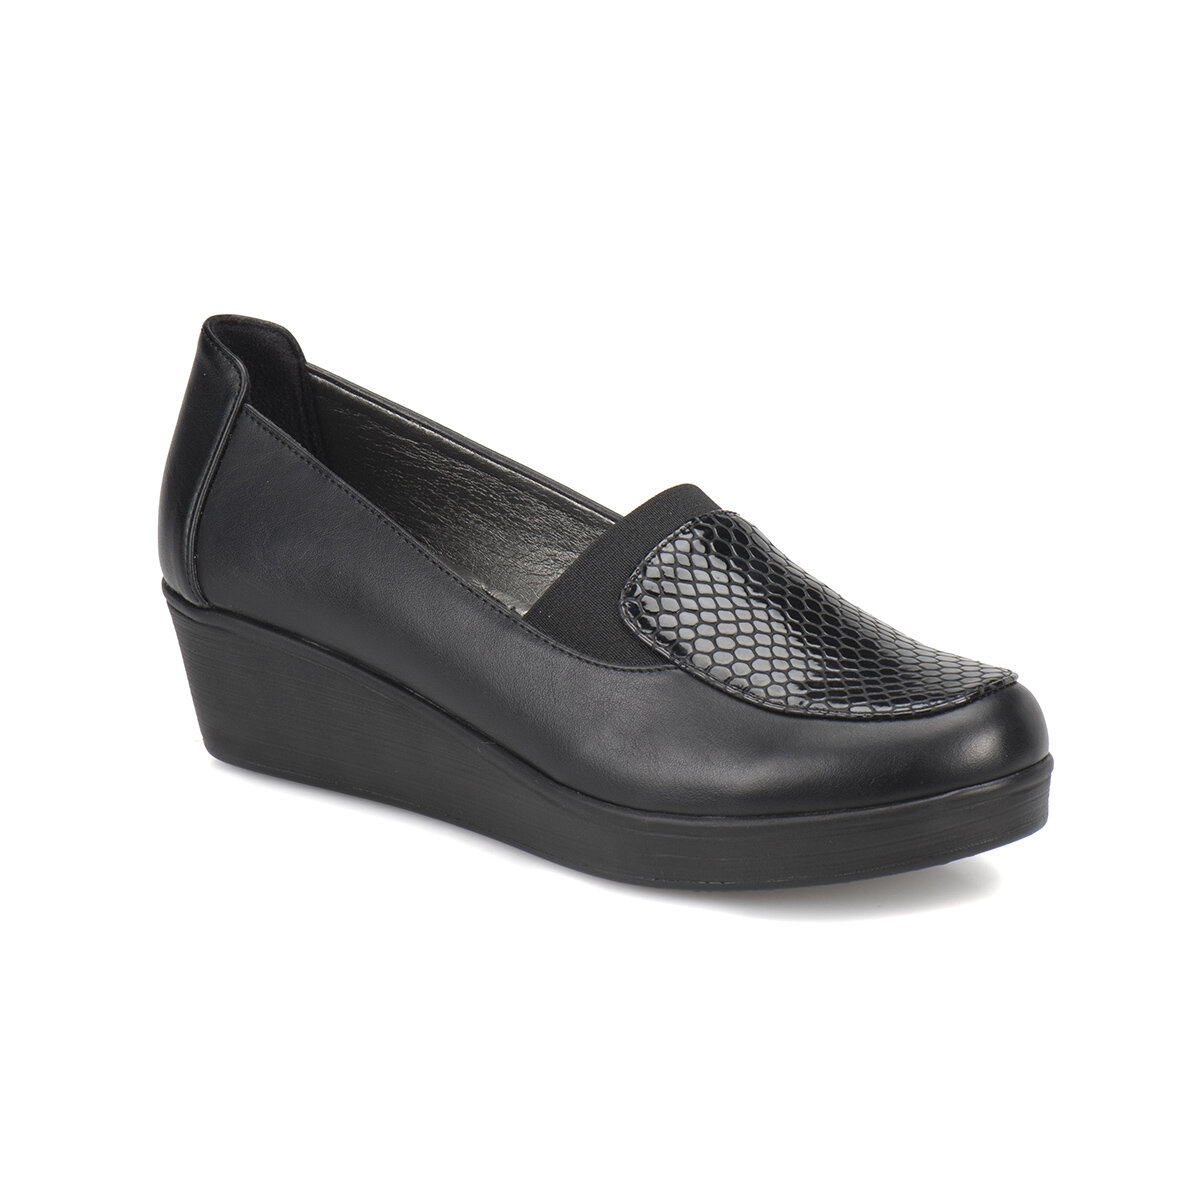 FLO 72.158086.Z Black Women 'S Wedges Shoes Polaris